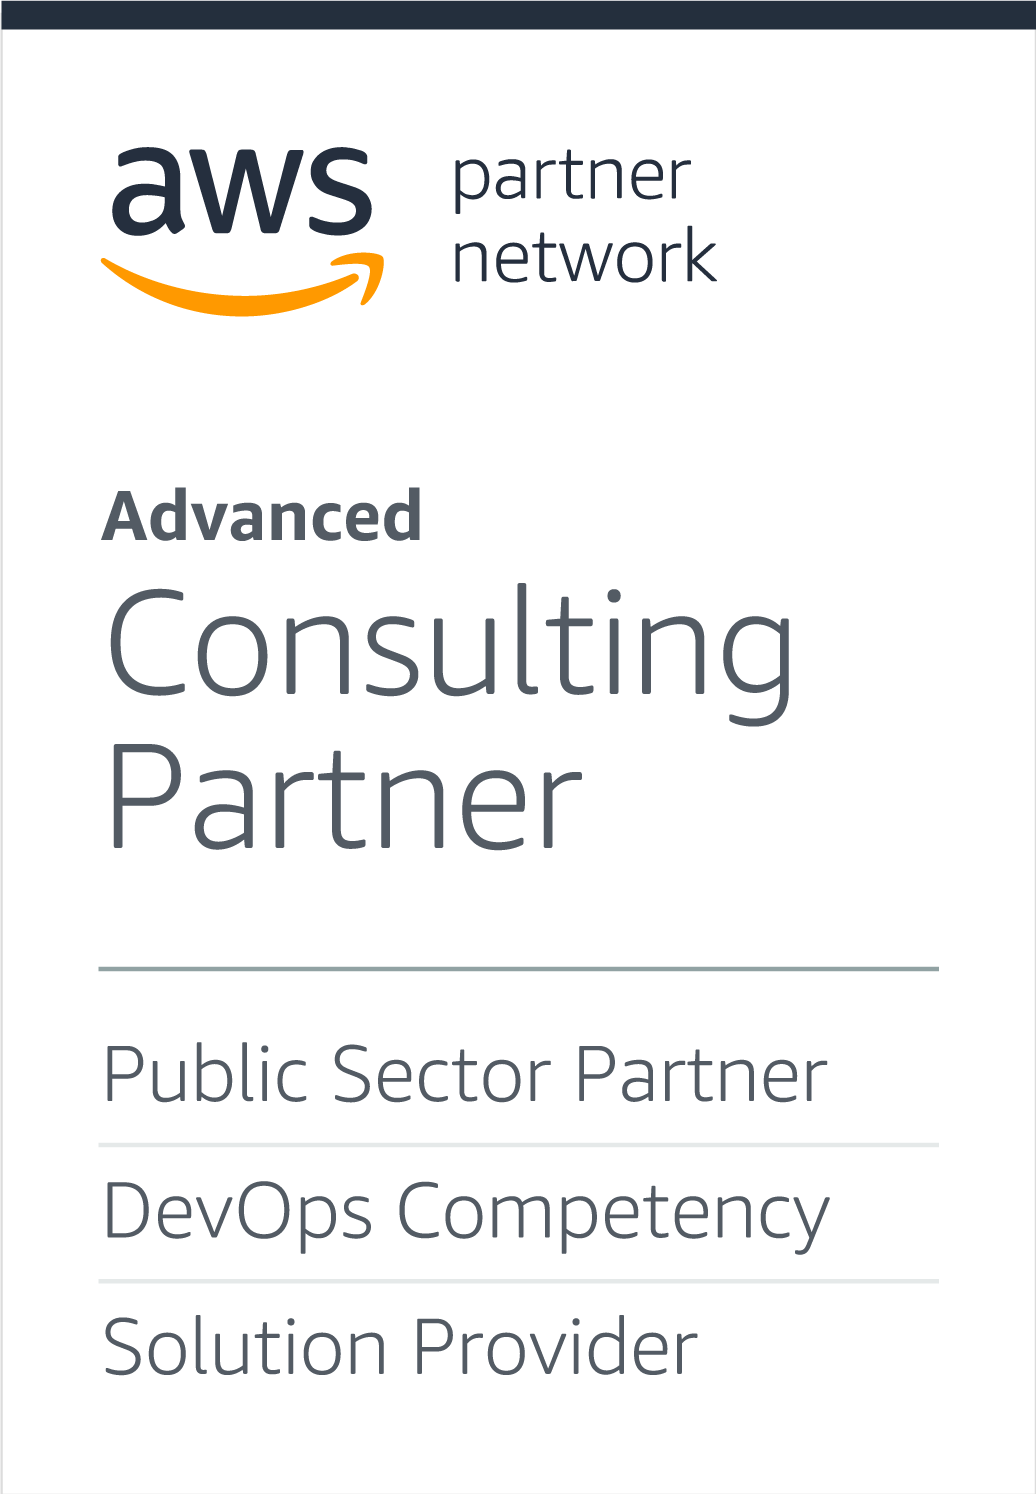 Amazon Web Services - Advanced Consulting Partner - DevOps Competency